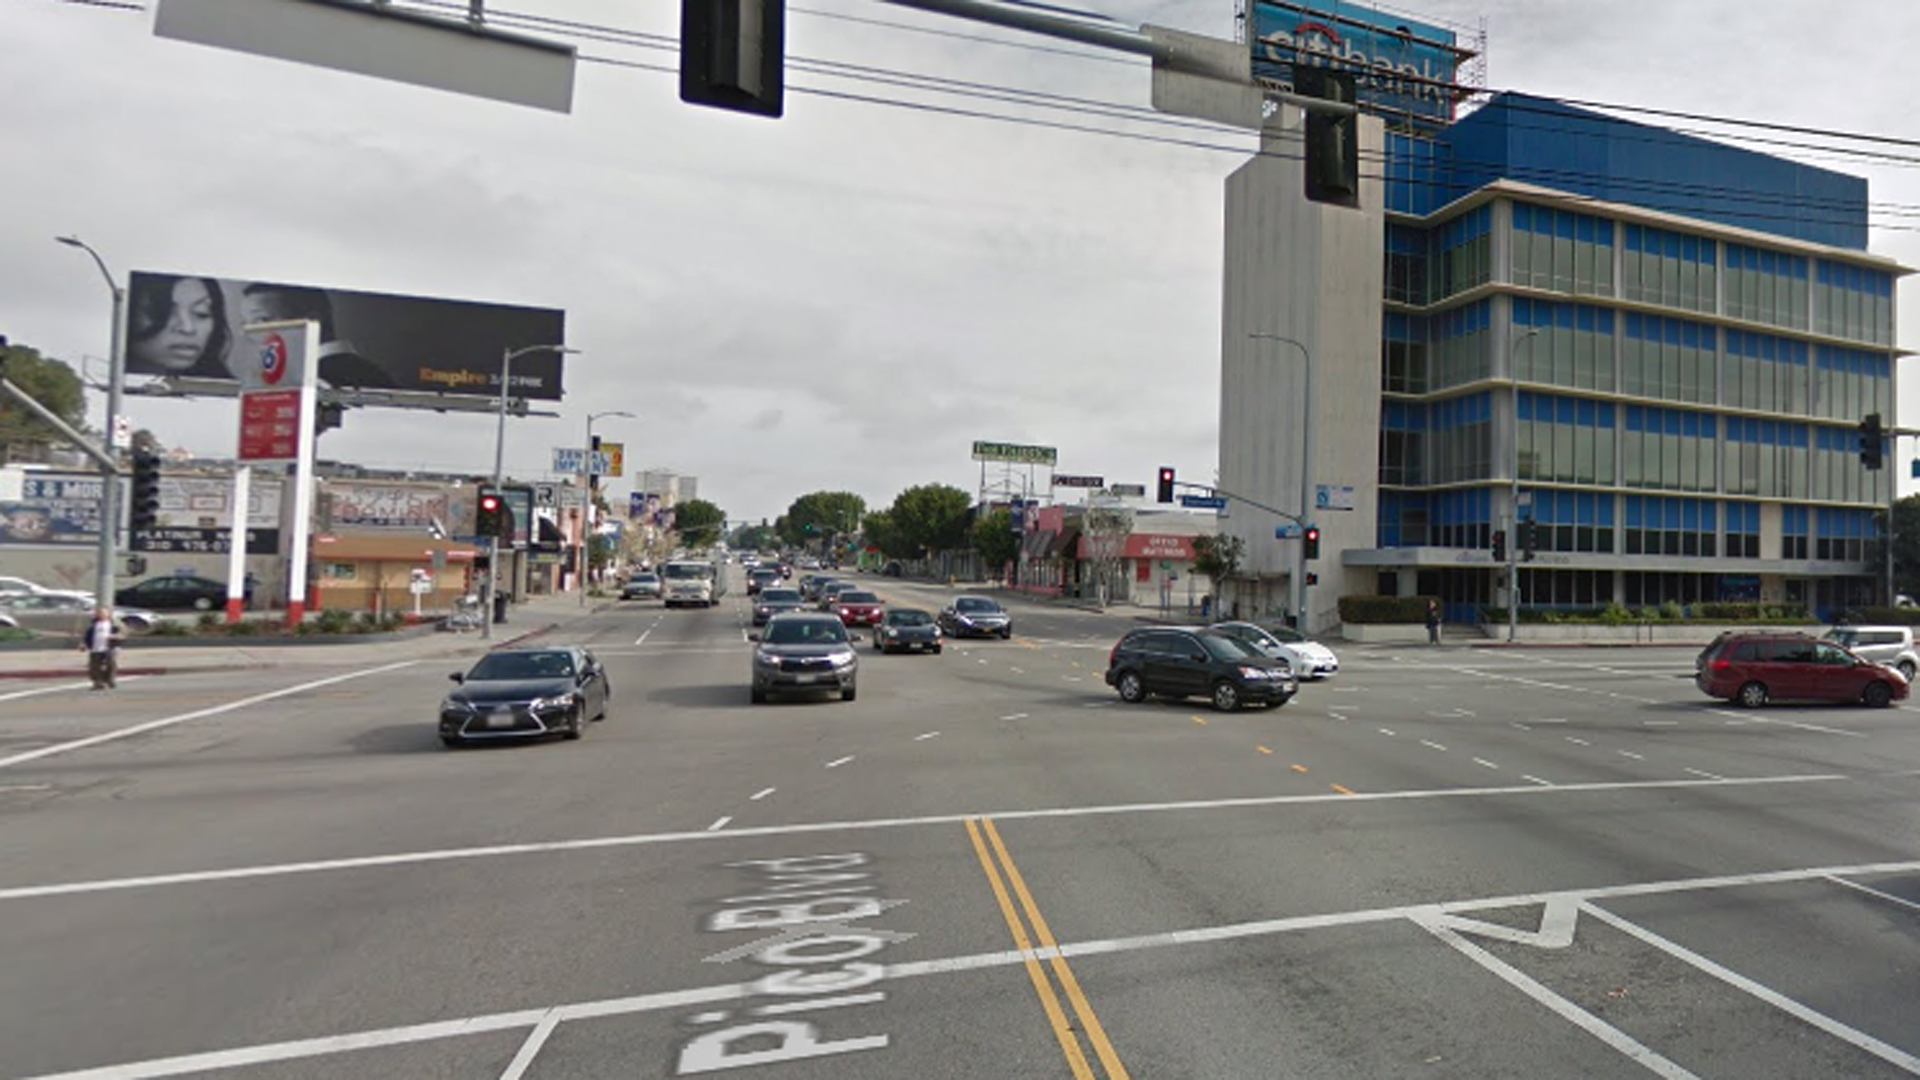 The area of Pico and Overland is seen in this Google Maps street view image.